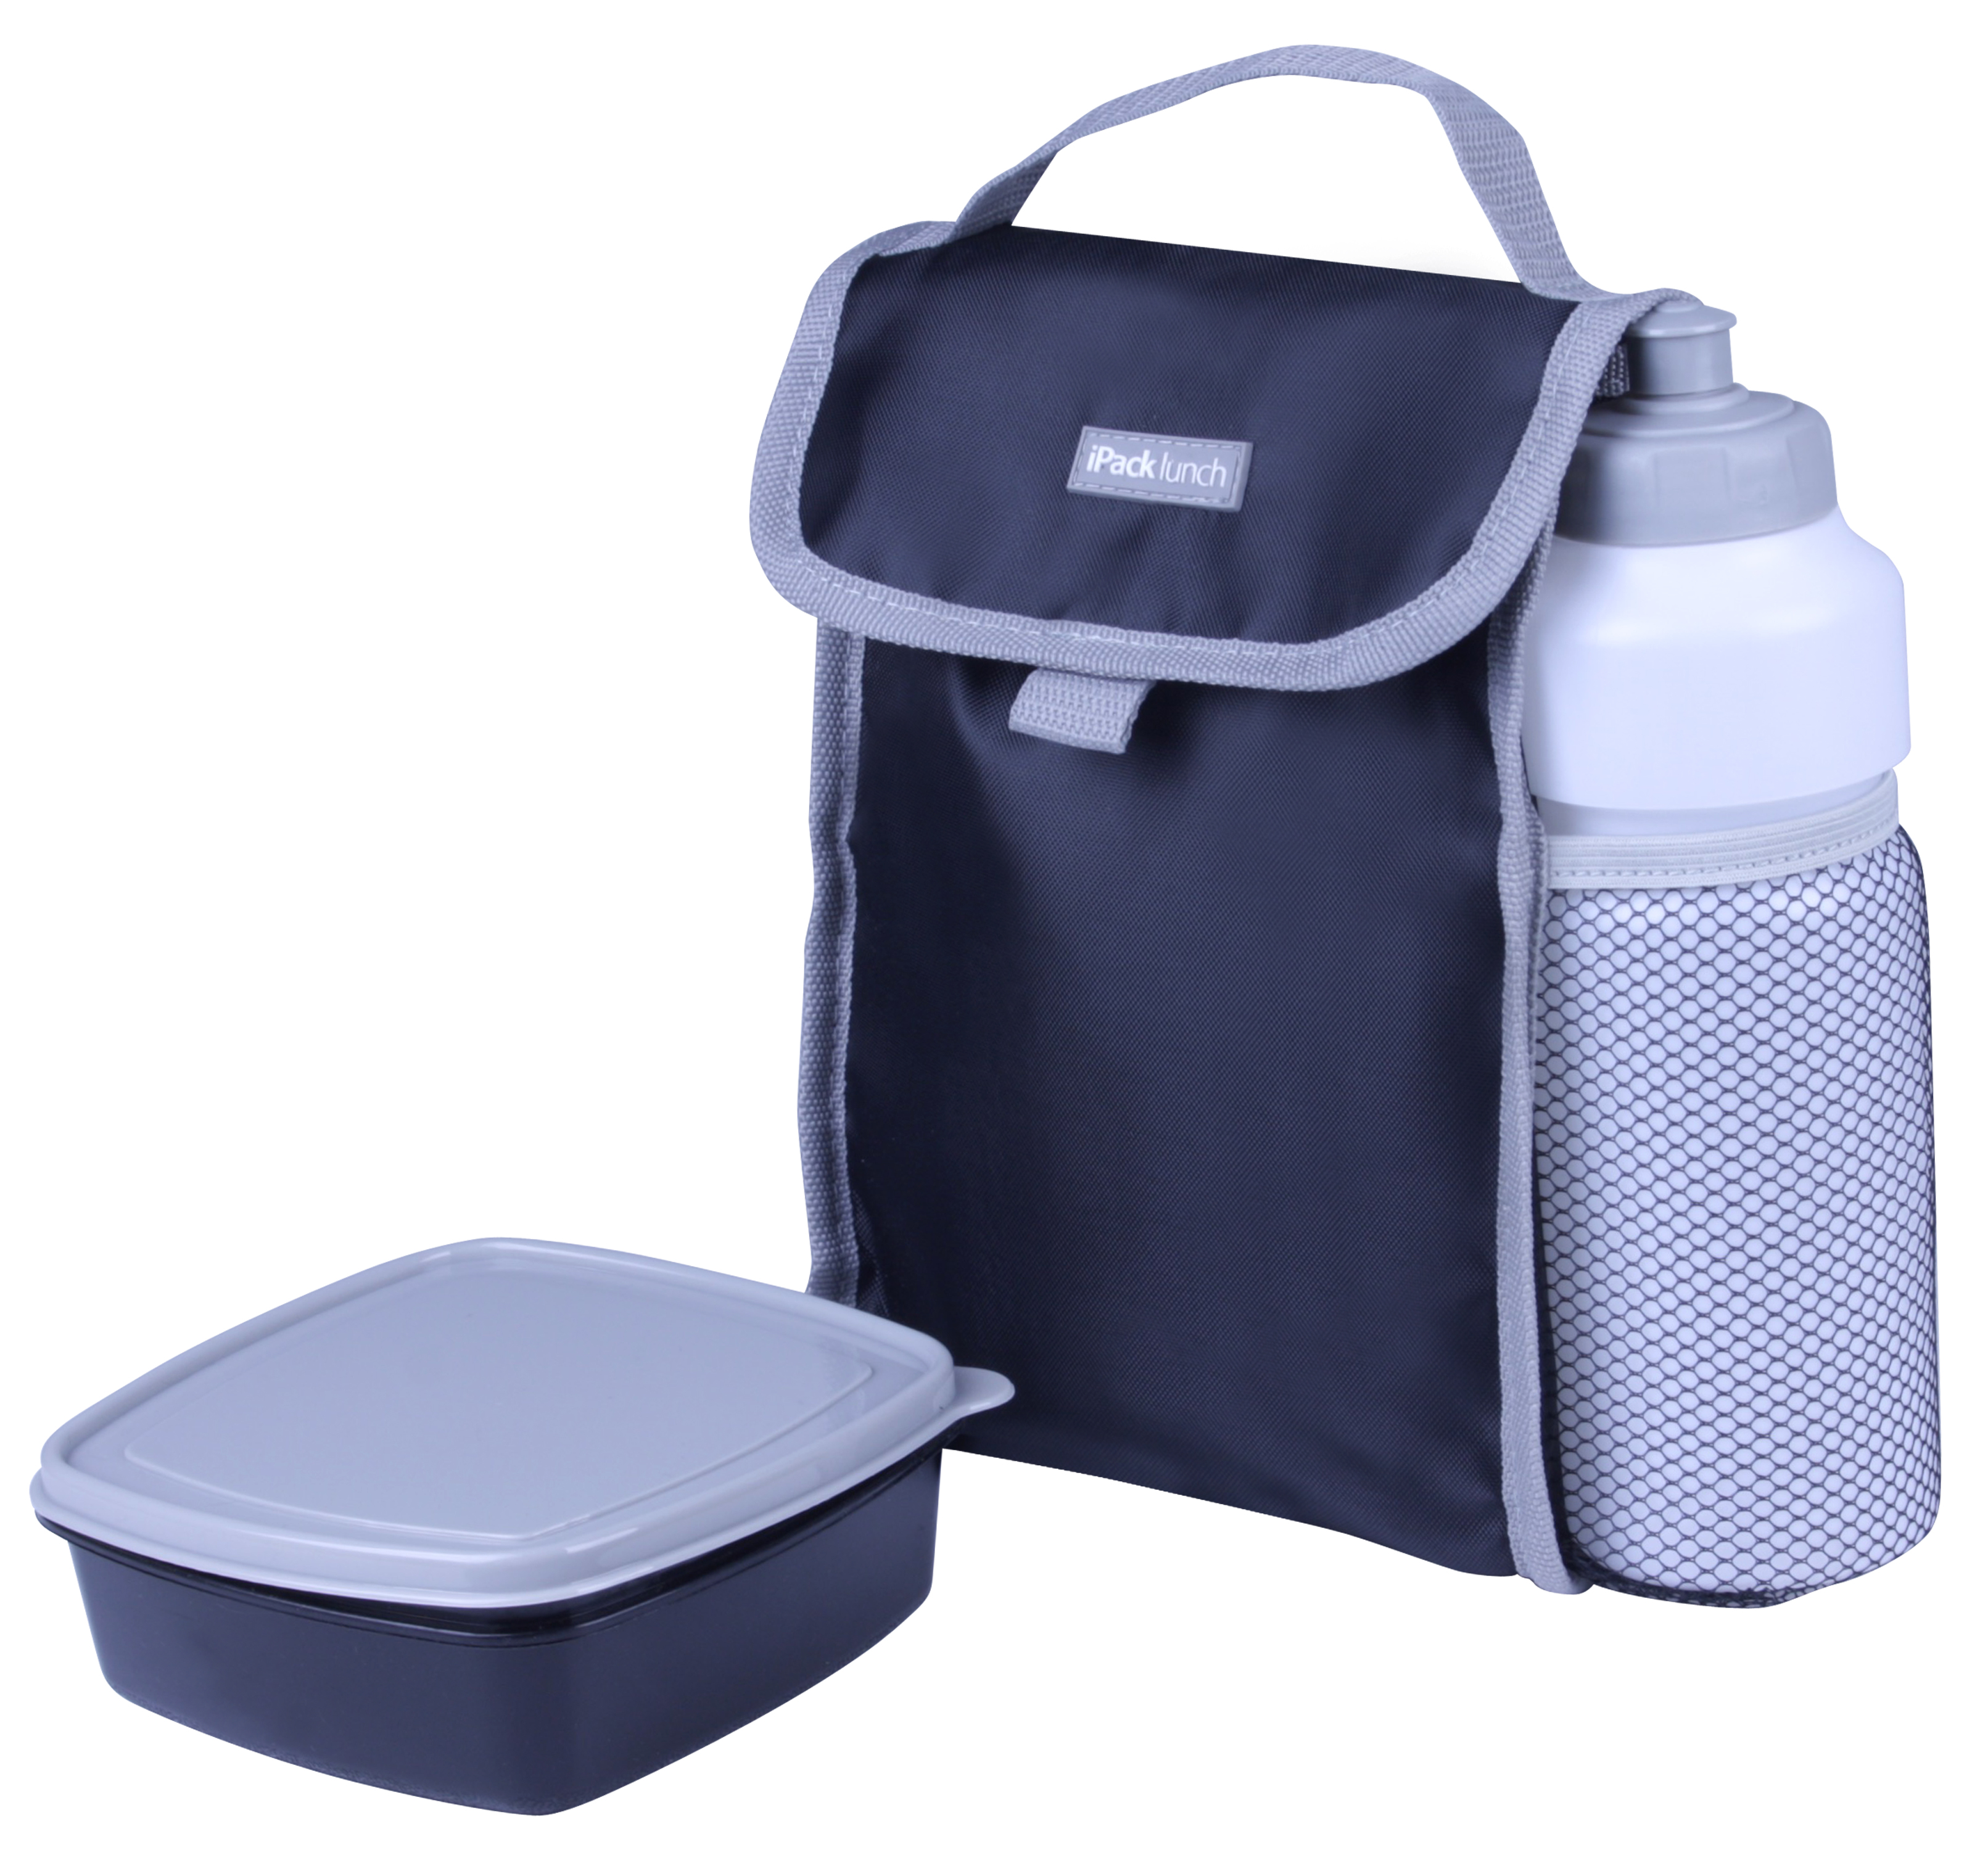 iPack Lunch Kit 3 Piece Black